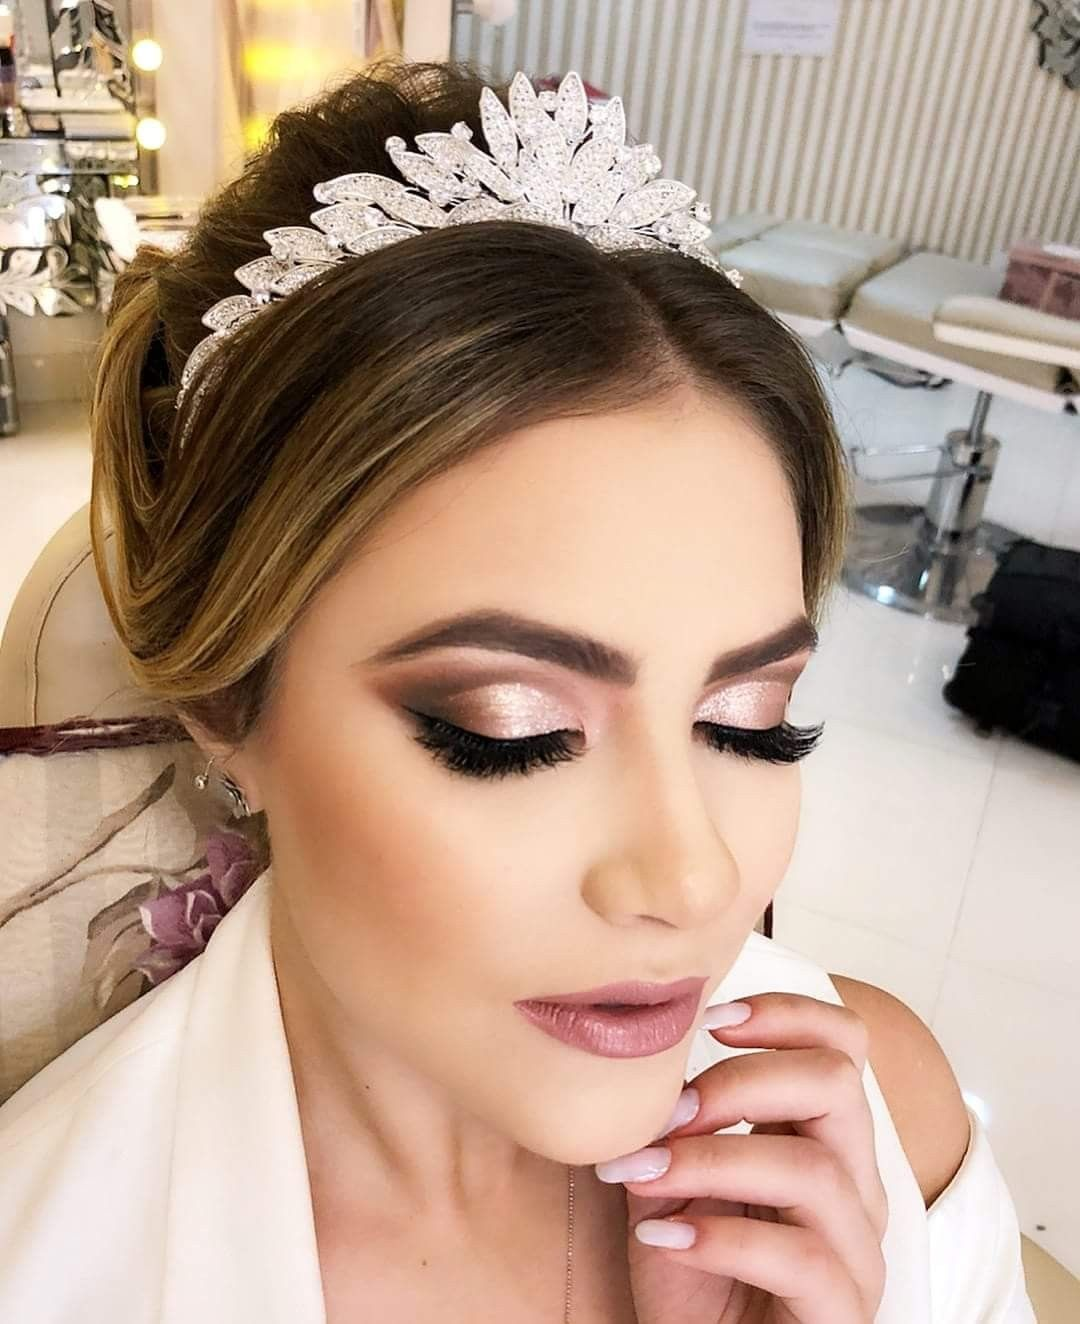 Makeup Ideas For Wedding Day